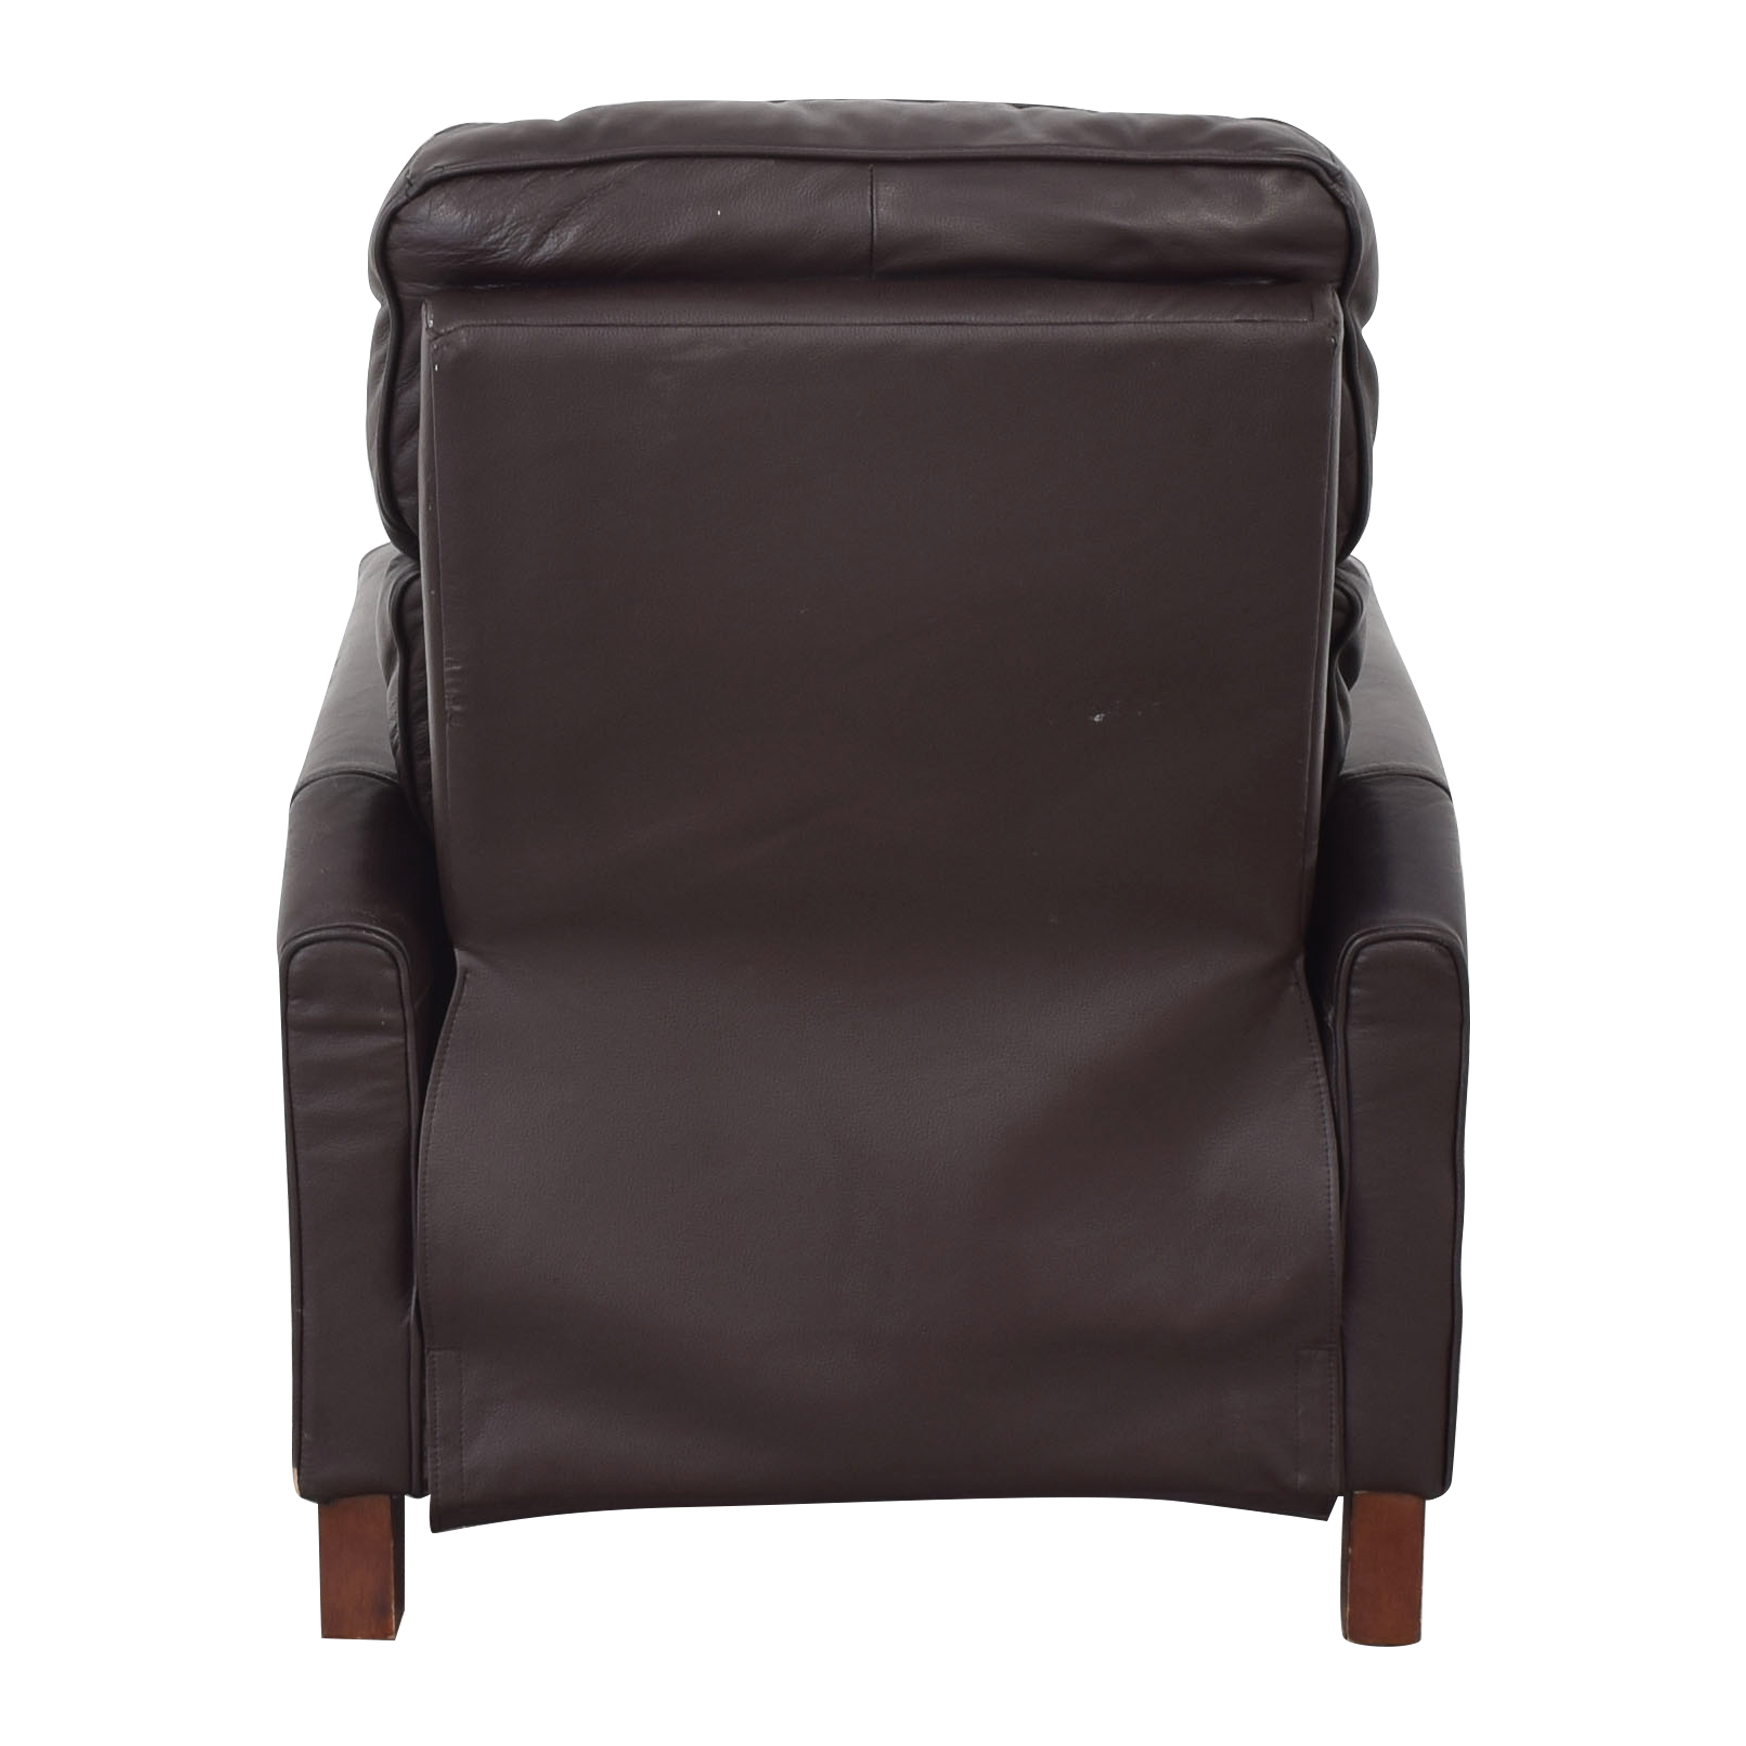 Macy's Leather Recliner Armchair / Recliners